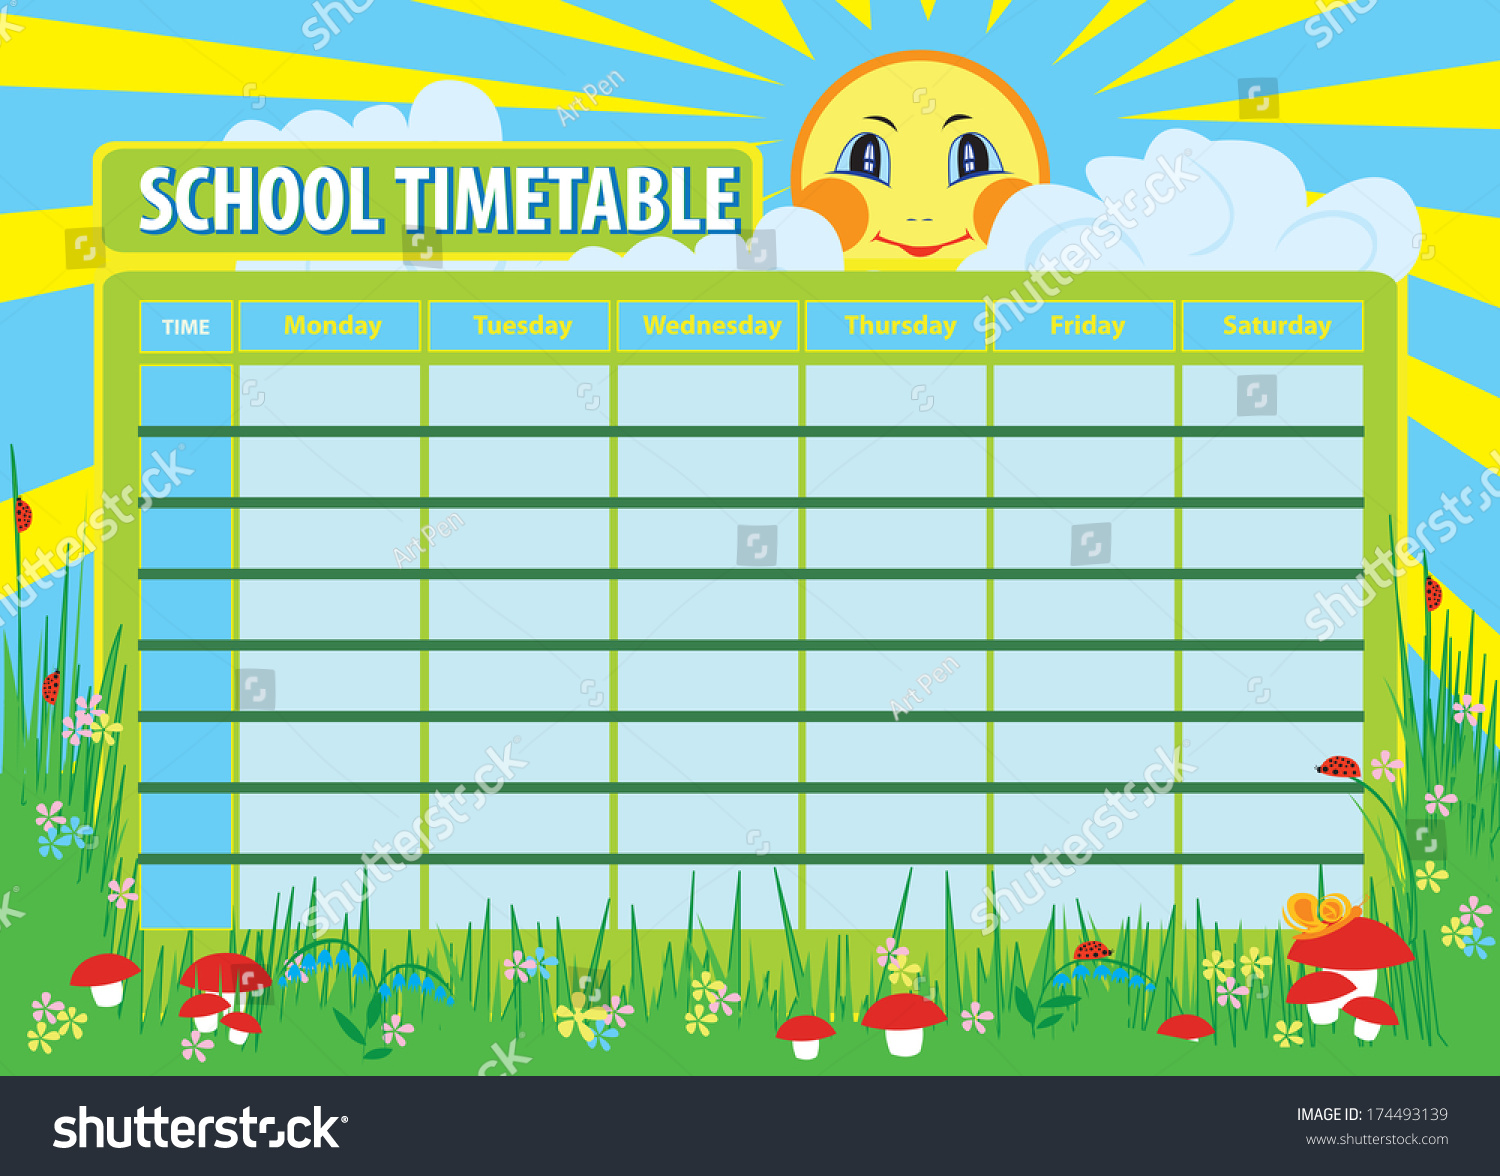 school timetable print template background stock illustration school timetable print template background